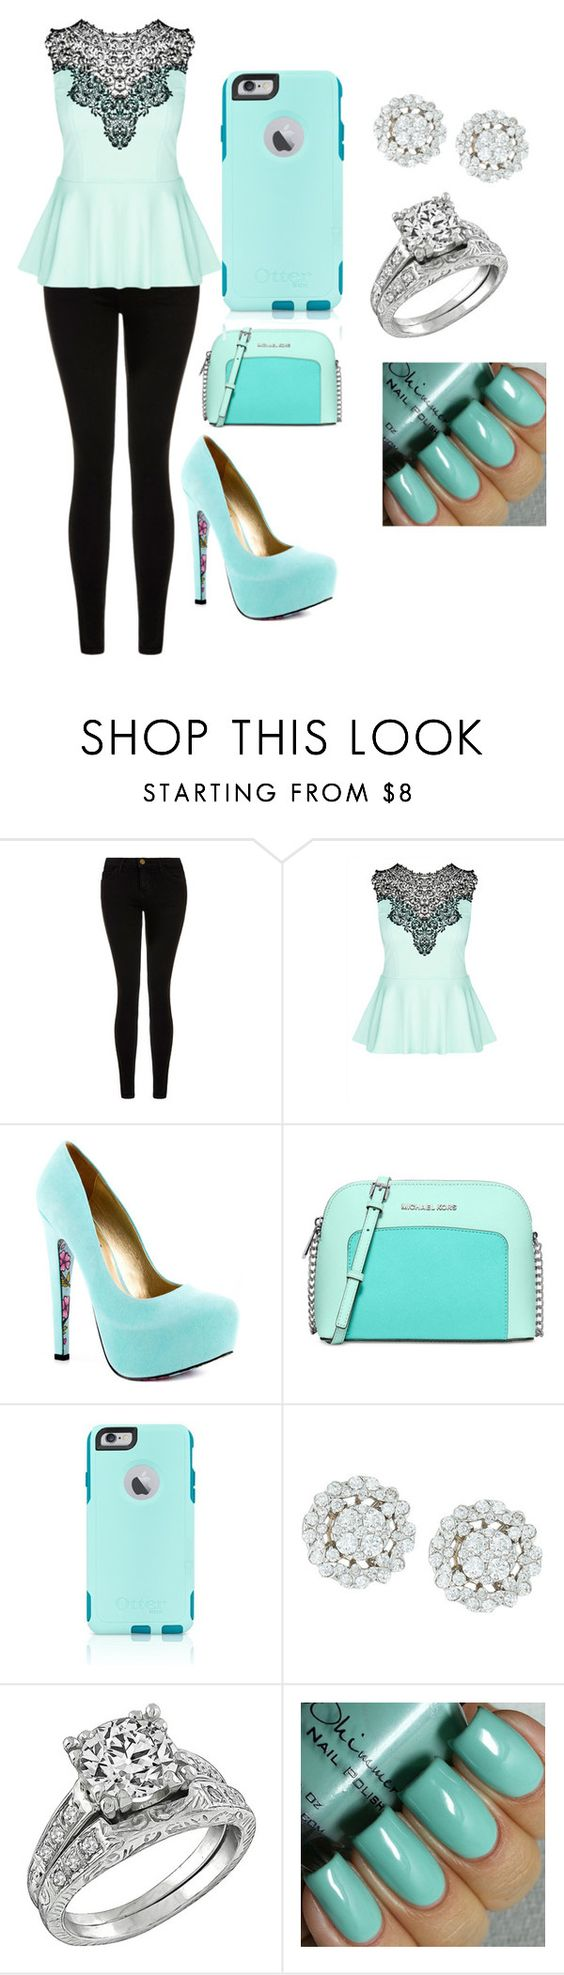 """""""Untitled #34"""" by lazandralaymon on Polyvore featuring Current/Elliott, City Chic, TaylorSays, Michael Kors, OtterBox, women's clothing, women's fashion, women, female and woman"""